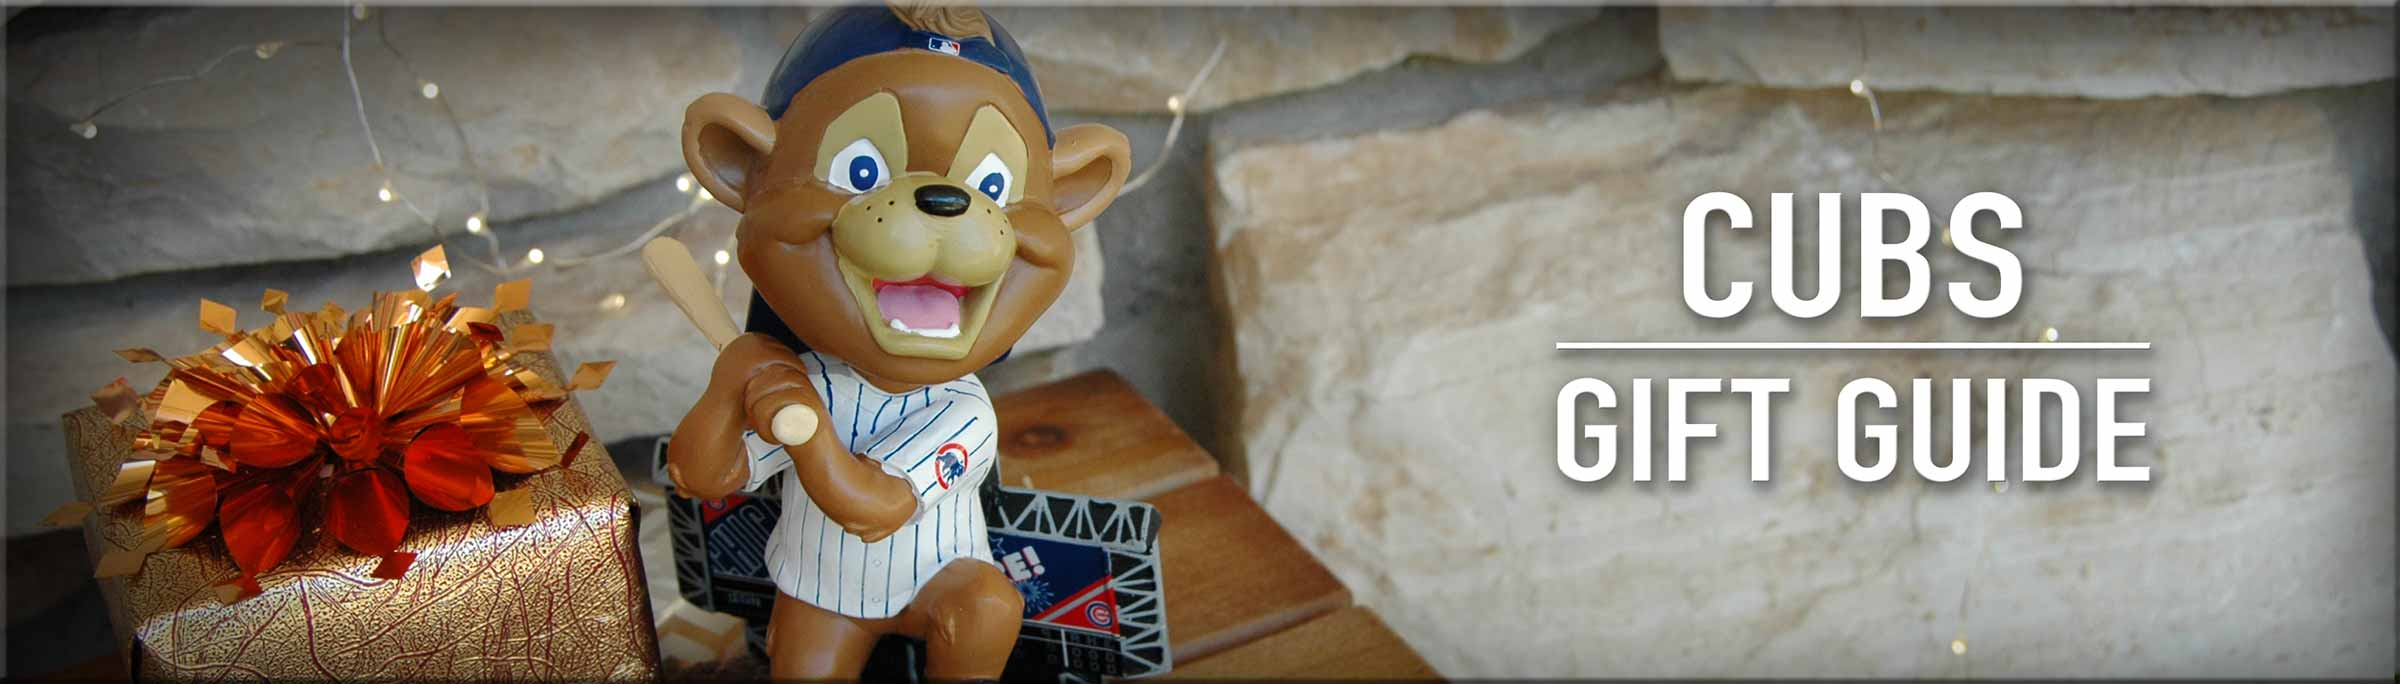 Gifts for Cubs Fans | Wrigleyville Sports